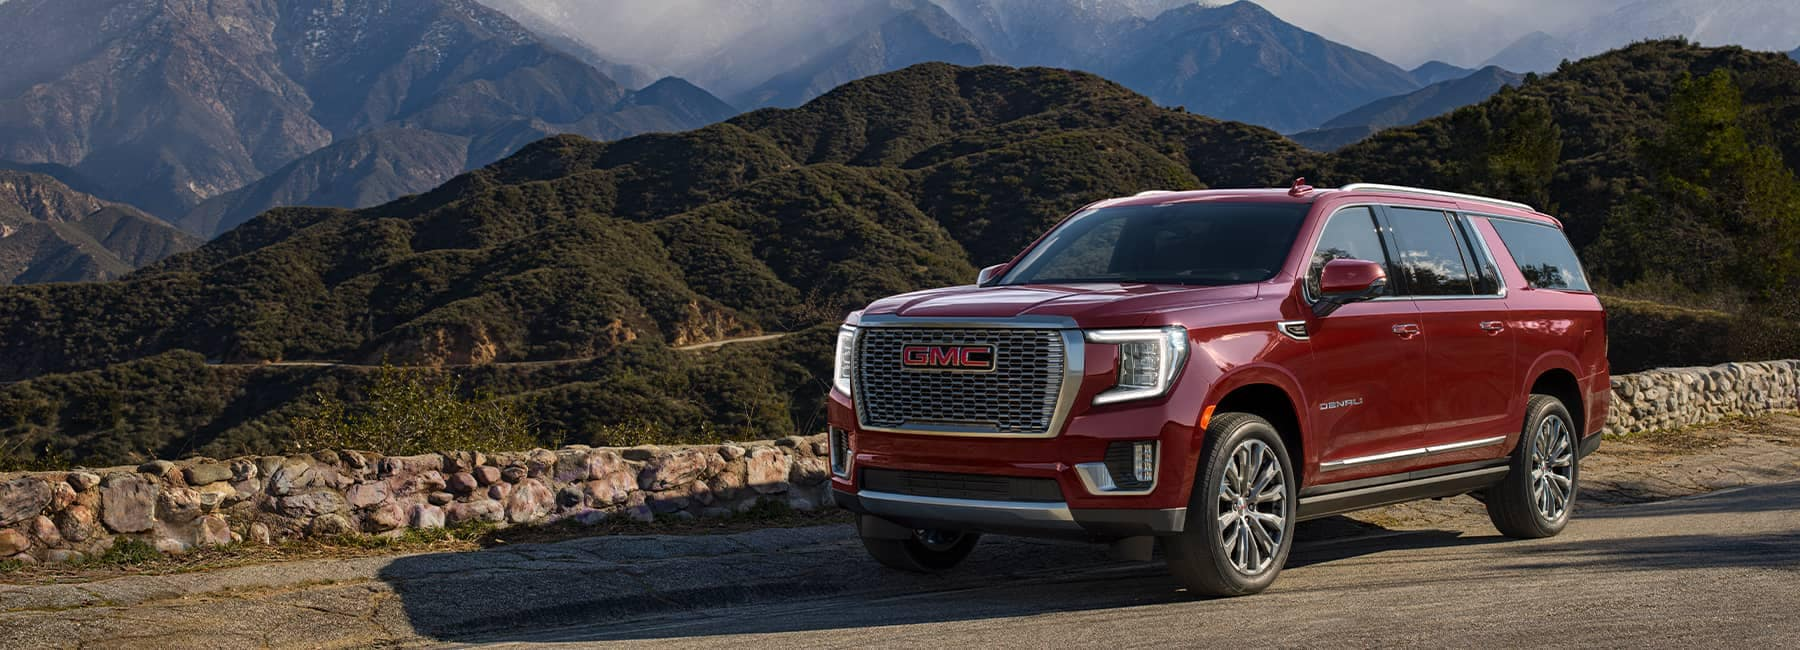 2021 Cayenne Red Yukon XL Denali in front of a mountain